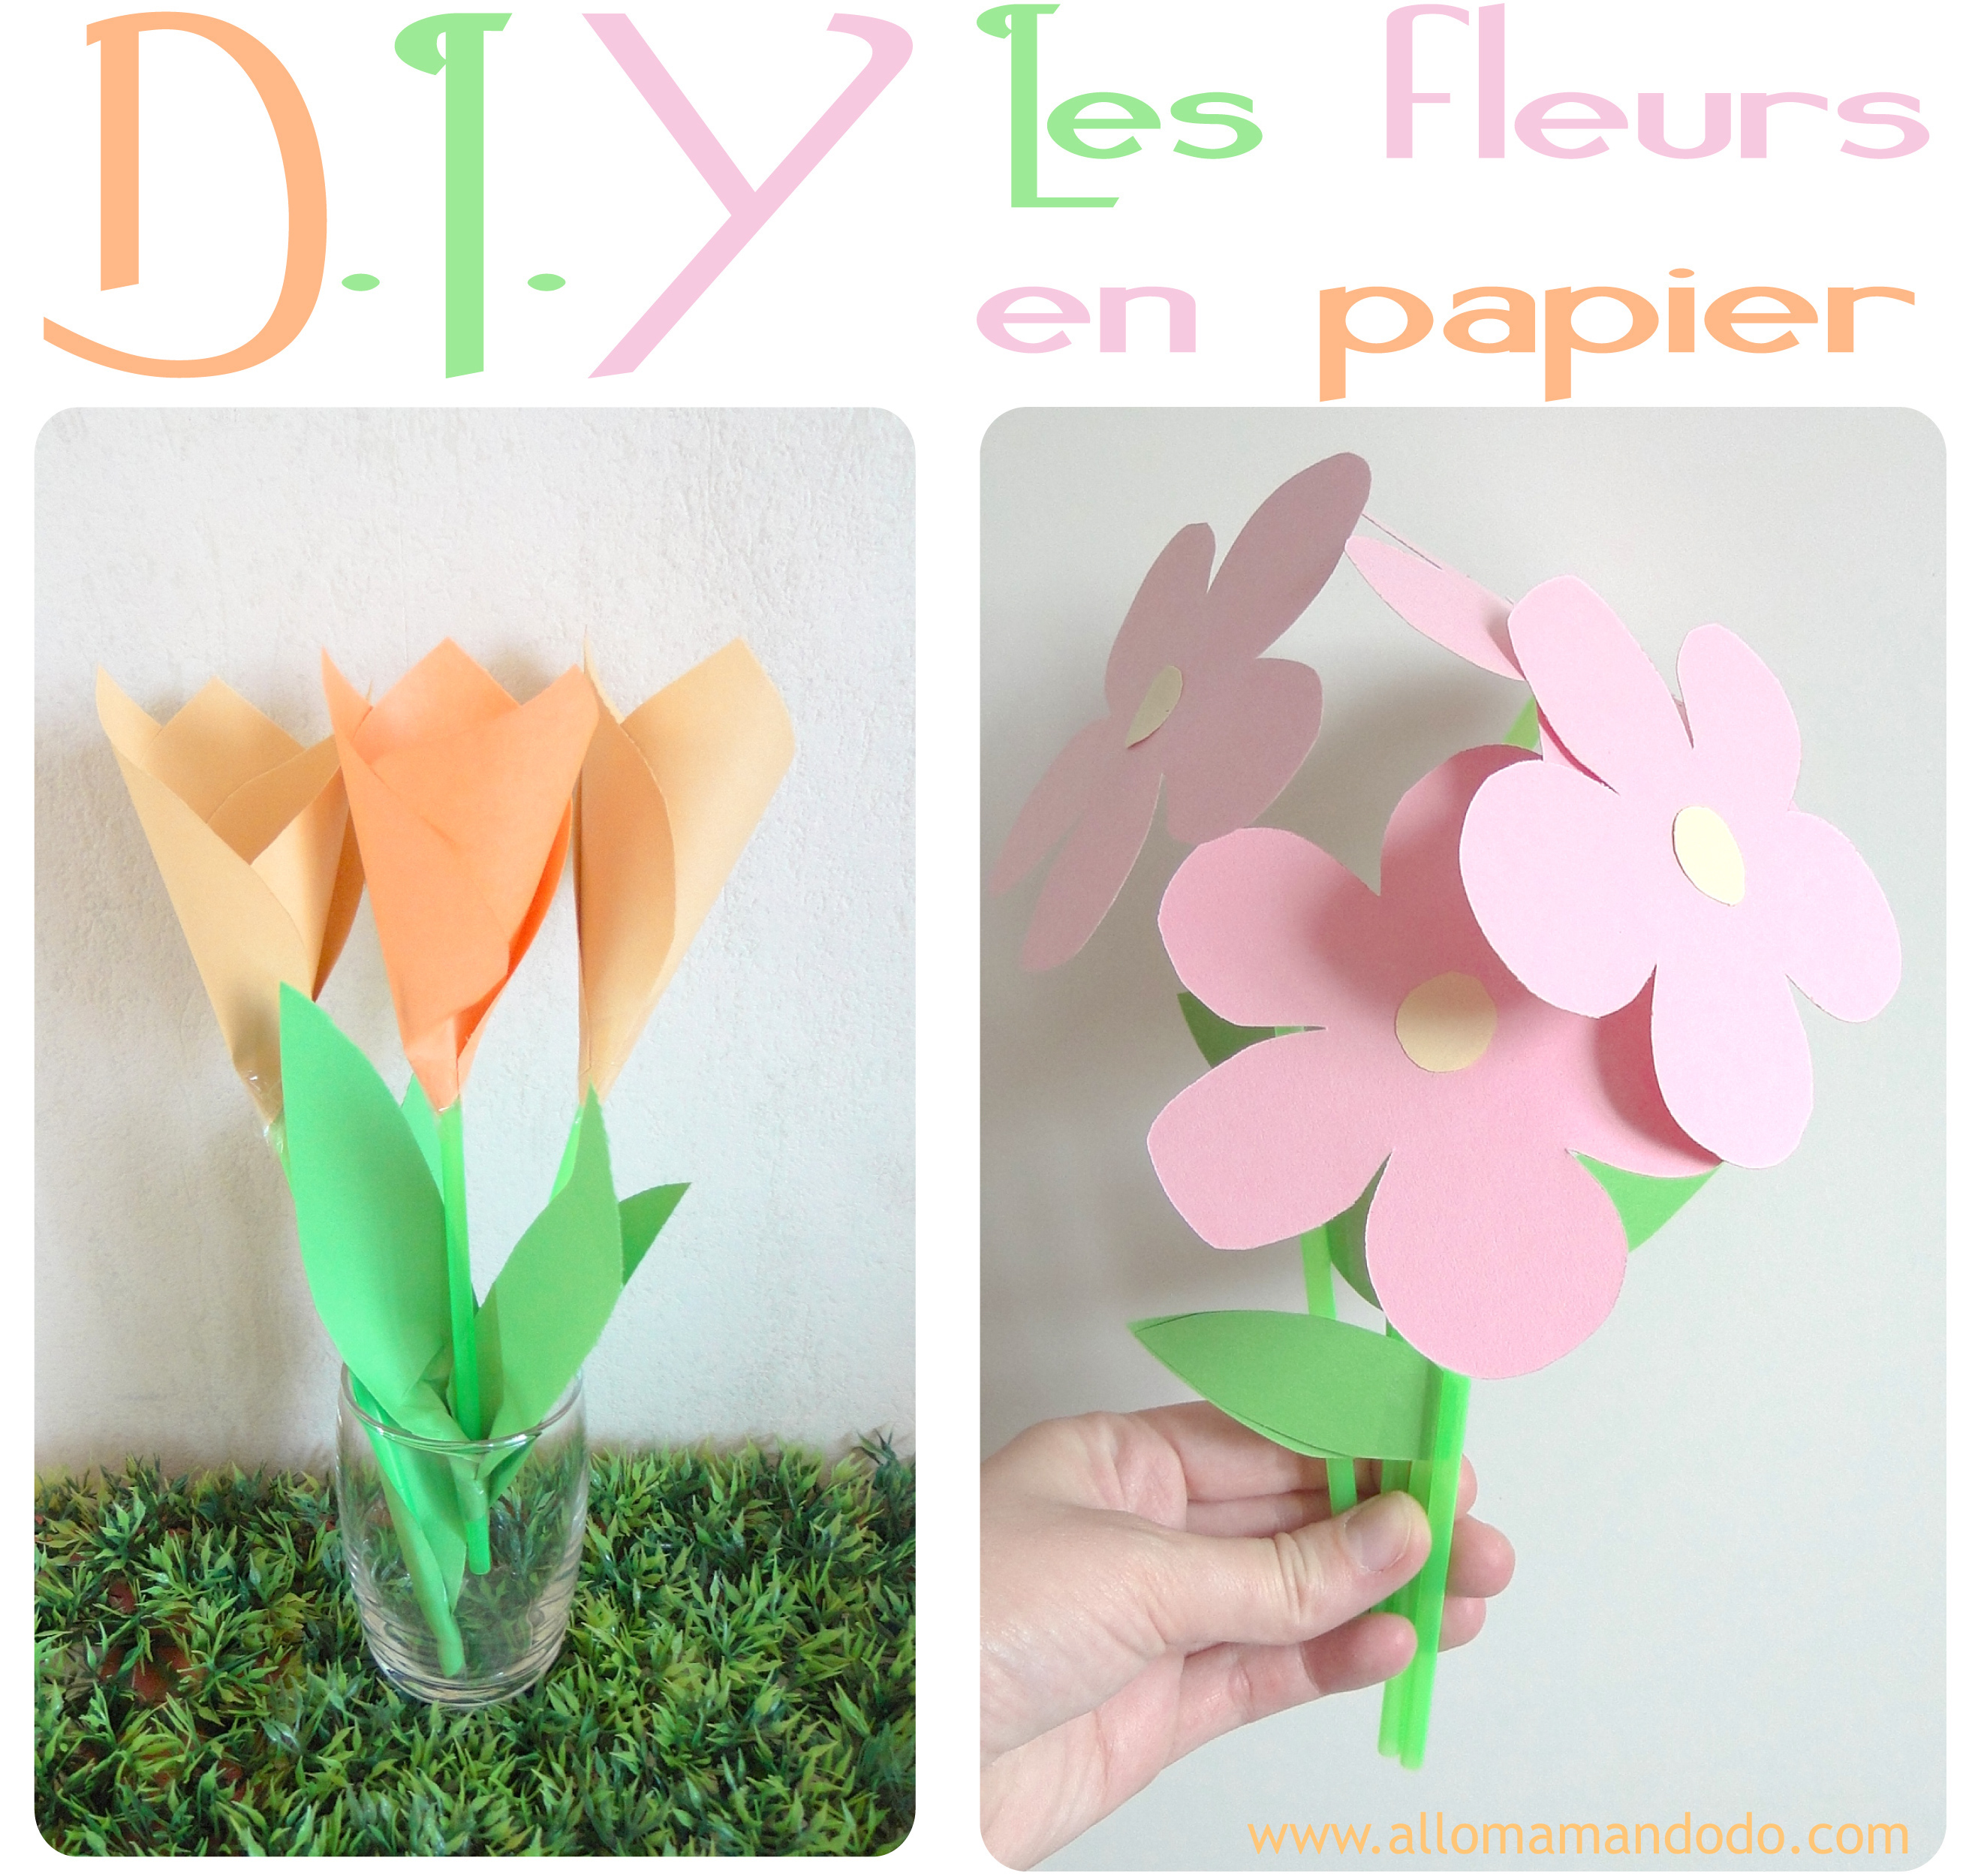 tuto diy les fleurs en papier facile allo maman dodo. Black Bedroom Furniture Sets. Home Design Ideas